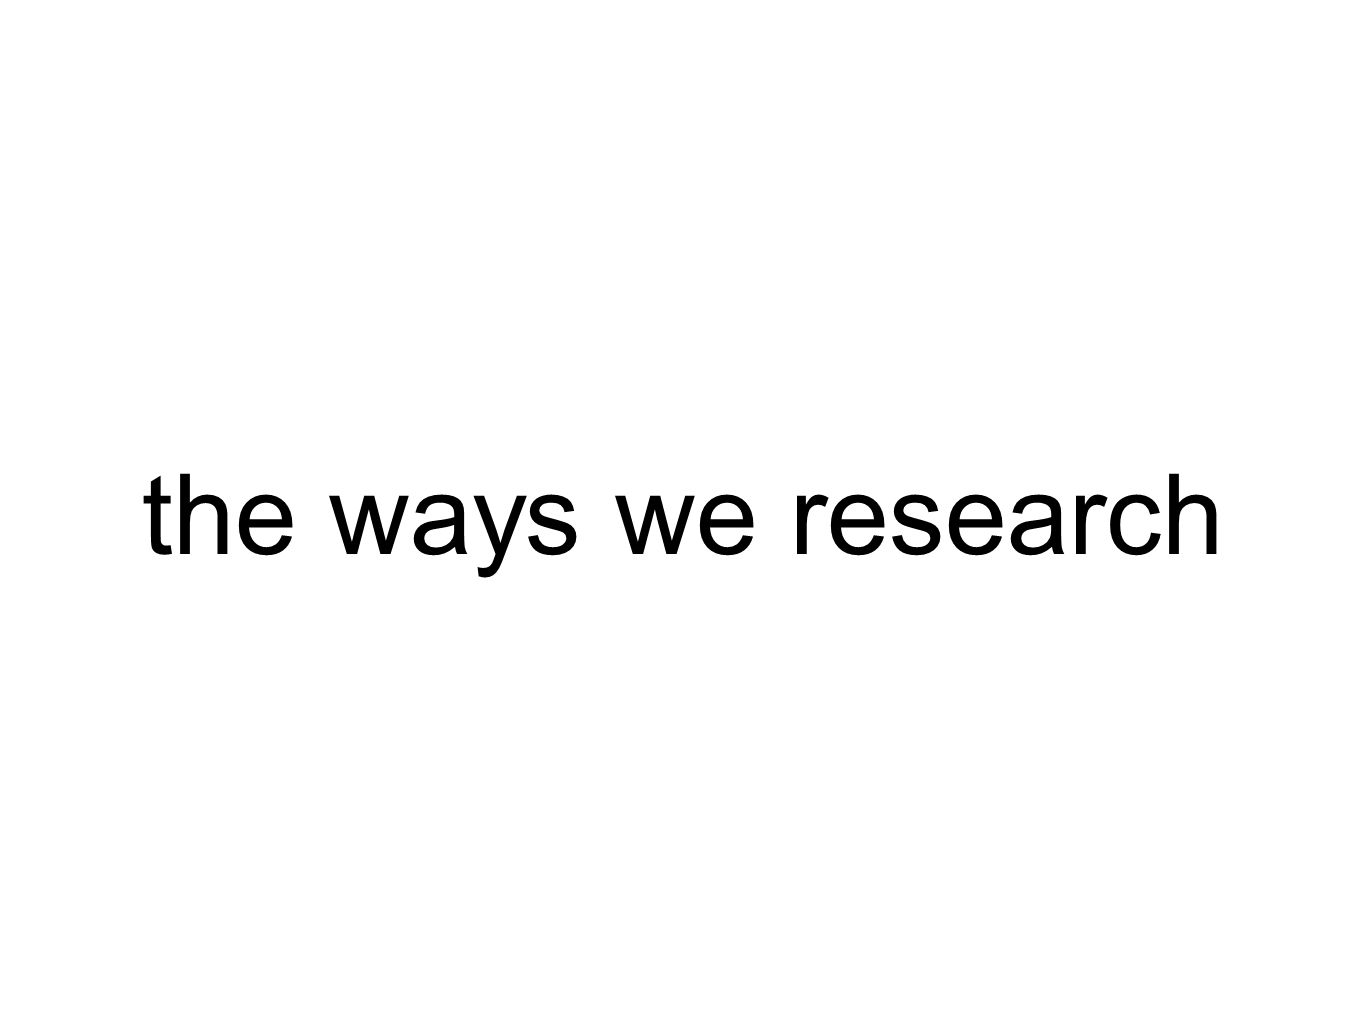 the ways we research